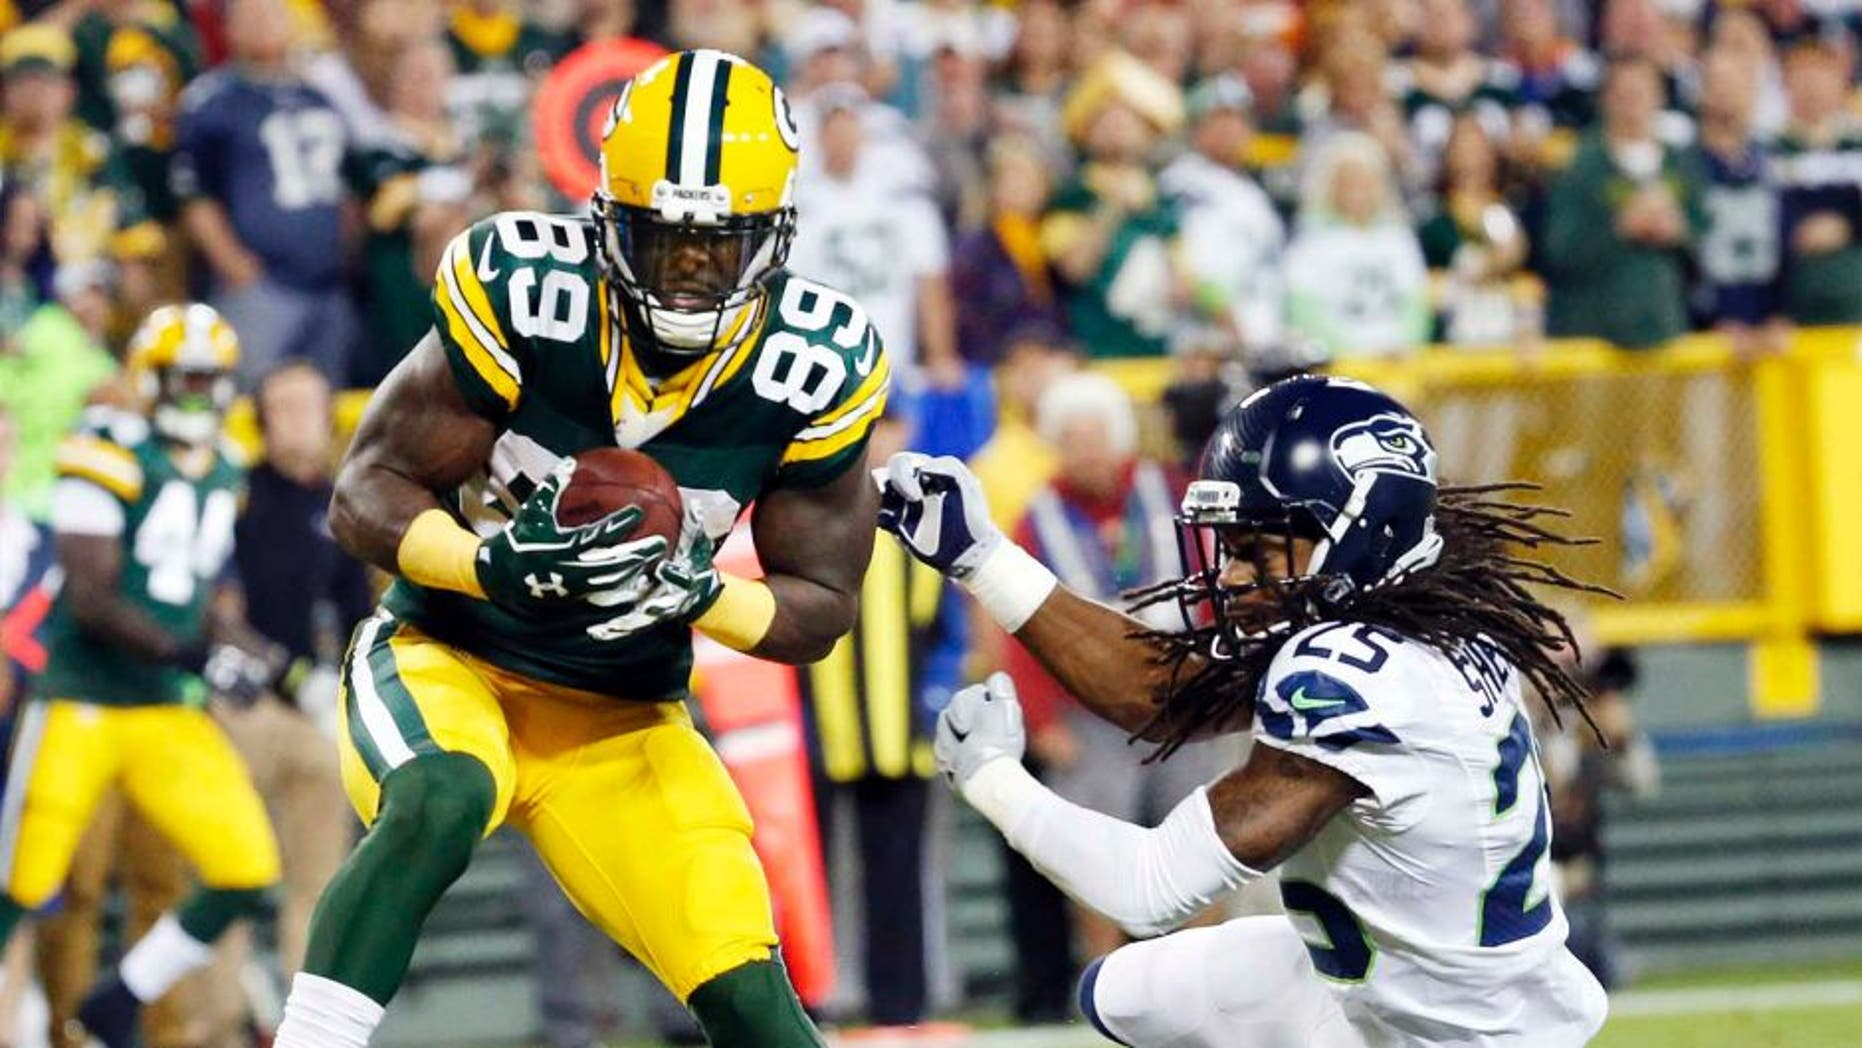 The Green Bay Packers' James Jones catches a touchdown pass in front of the Seattle Seahawks' Richard Sherman during the first half of an NFL football game Sunday, Sept. 20, 2015, in Green Bay, Wis.